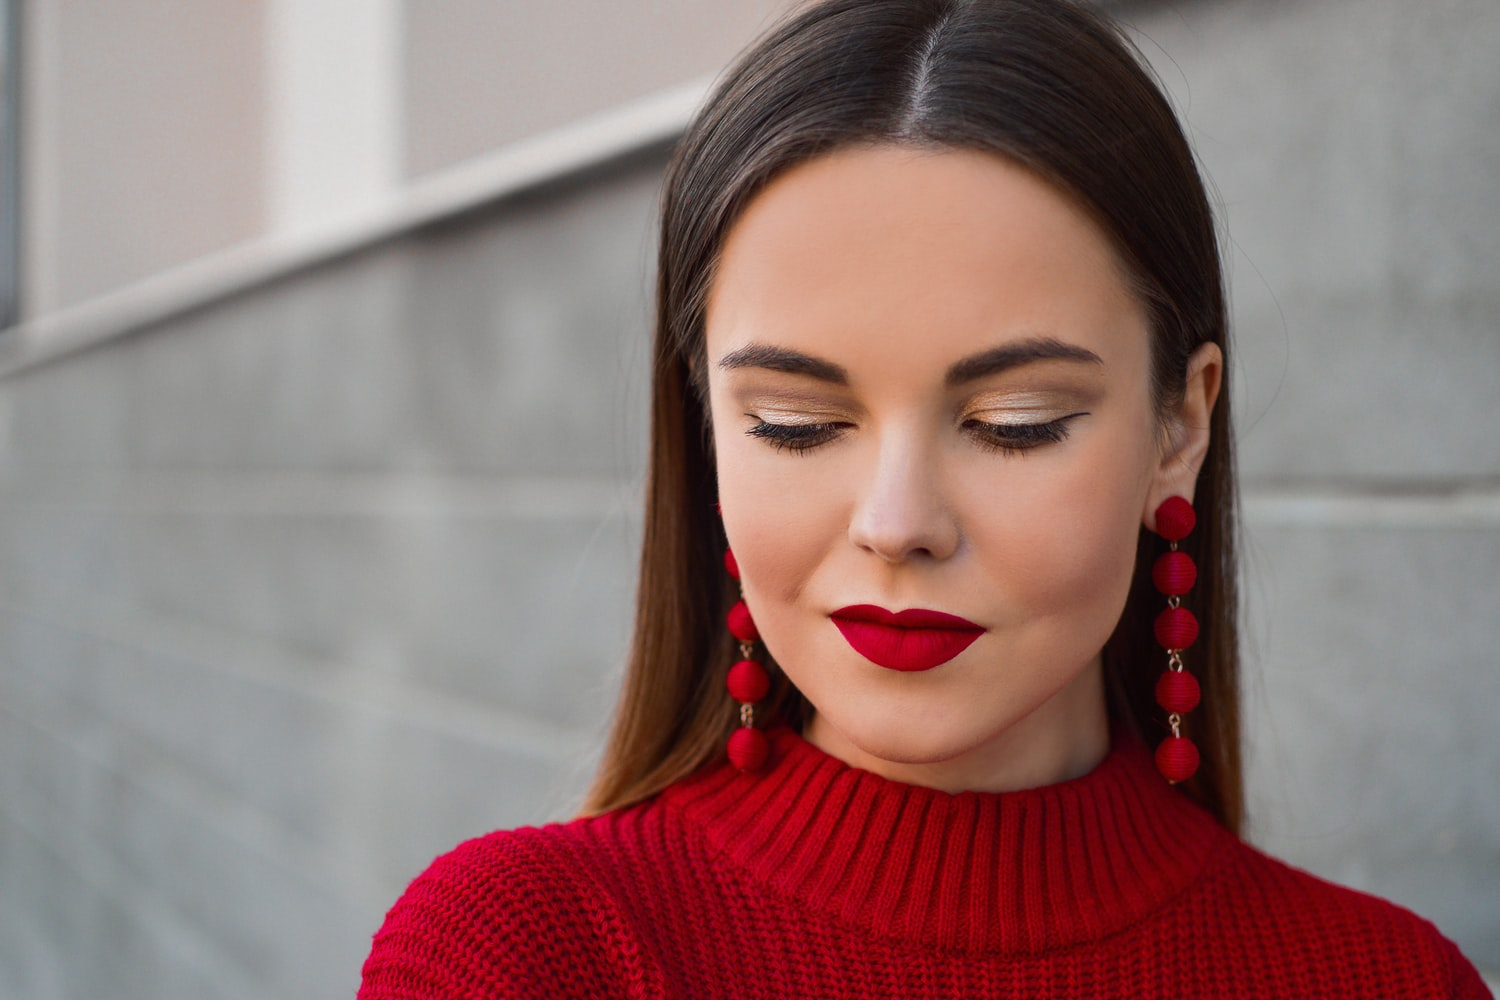 All you need to know about rocking the iconic Red lips